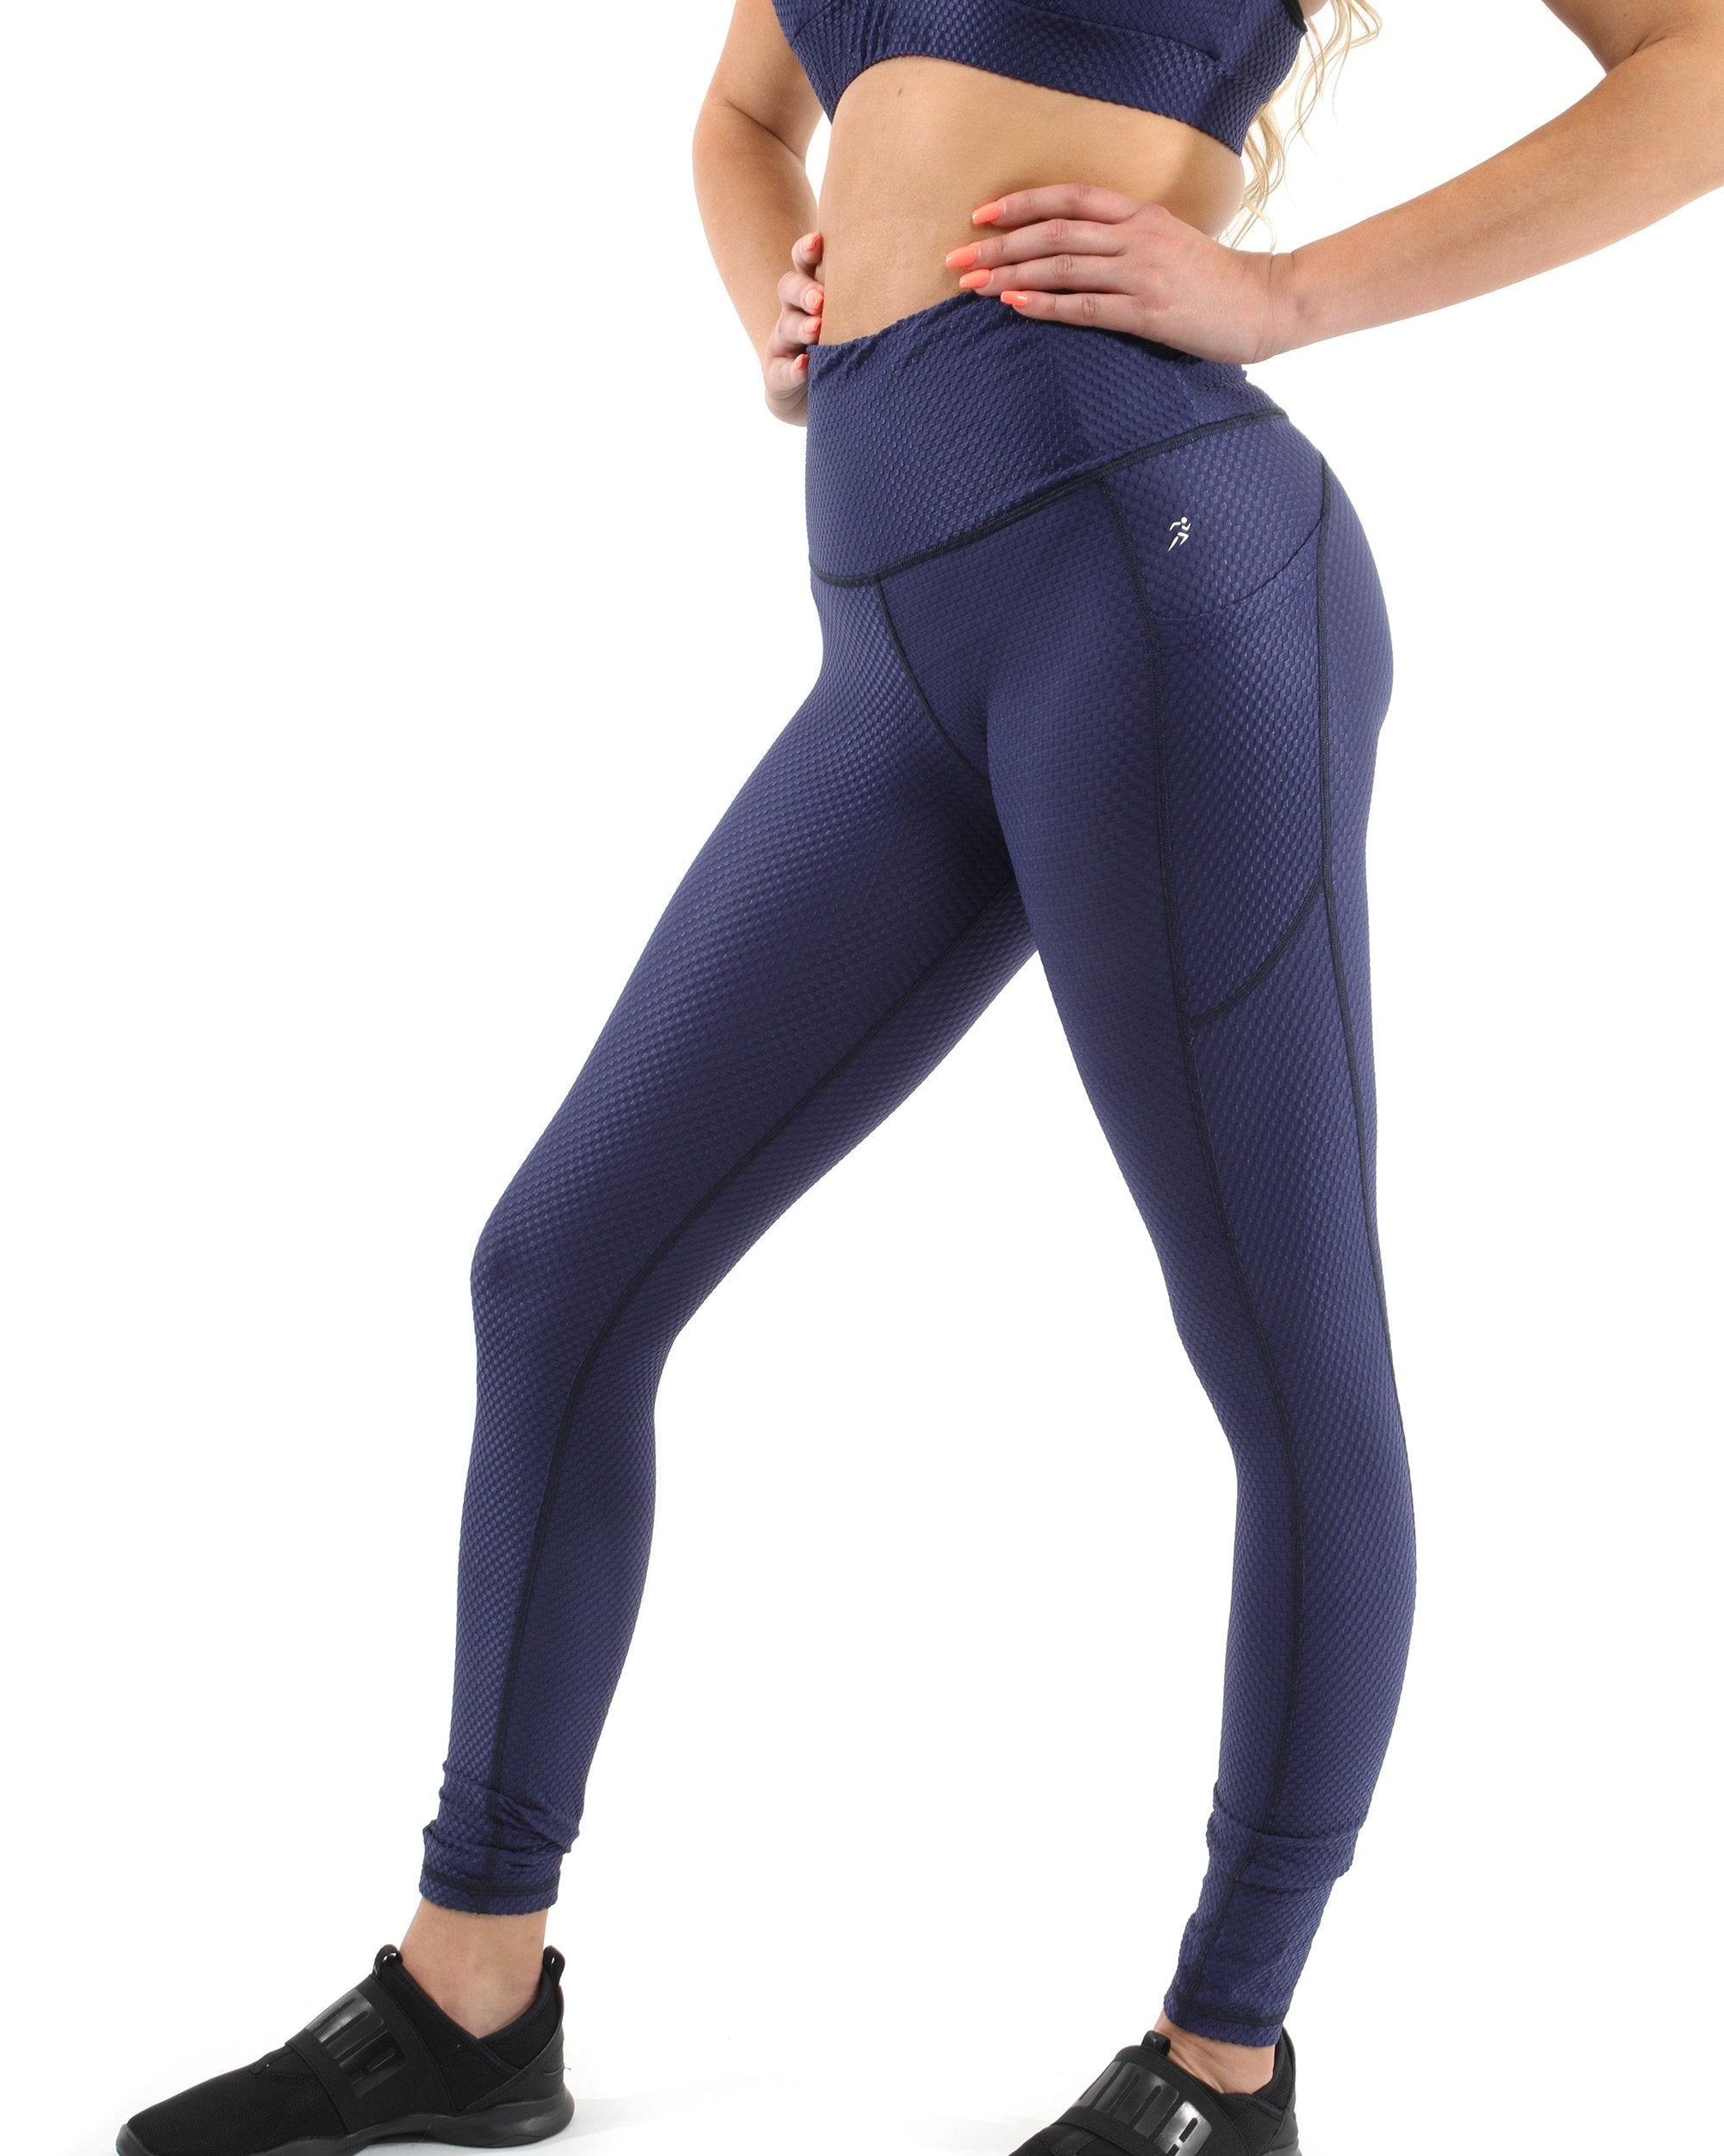 Venice Activewear Leggings - Navy [MADE IN ITALY] - Monsoon Ridge